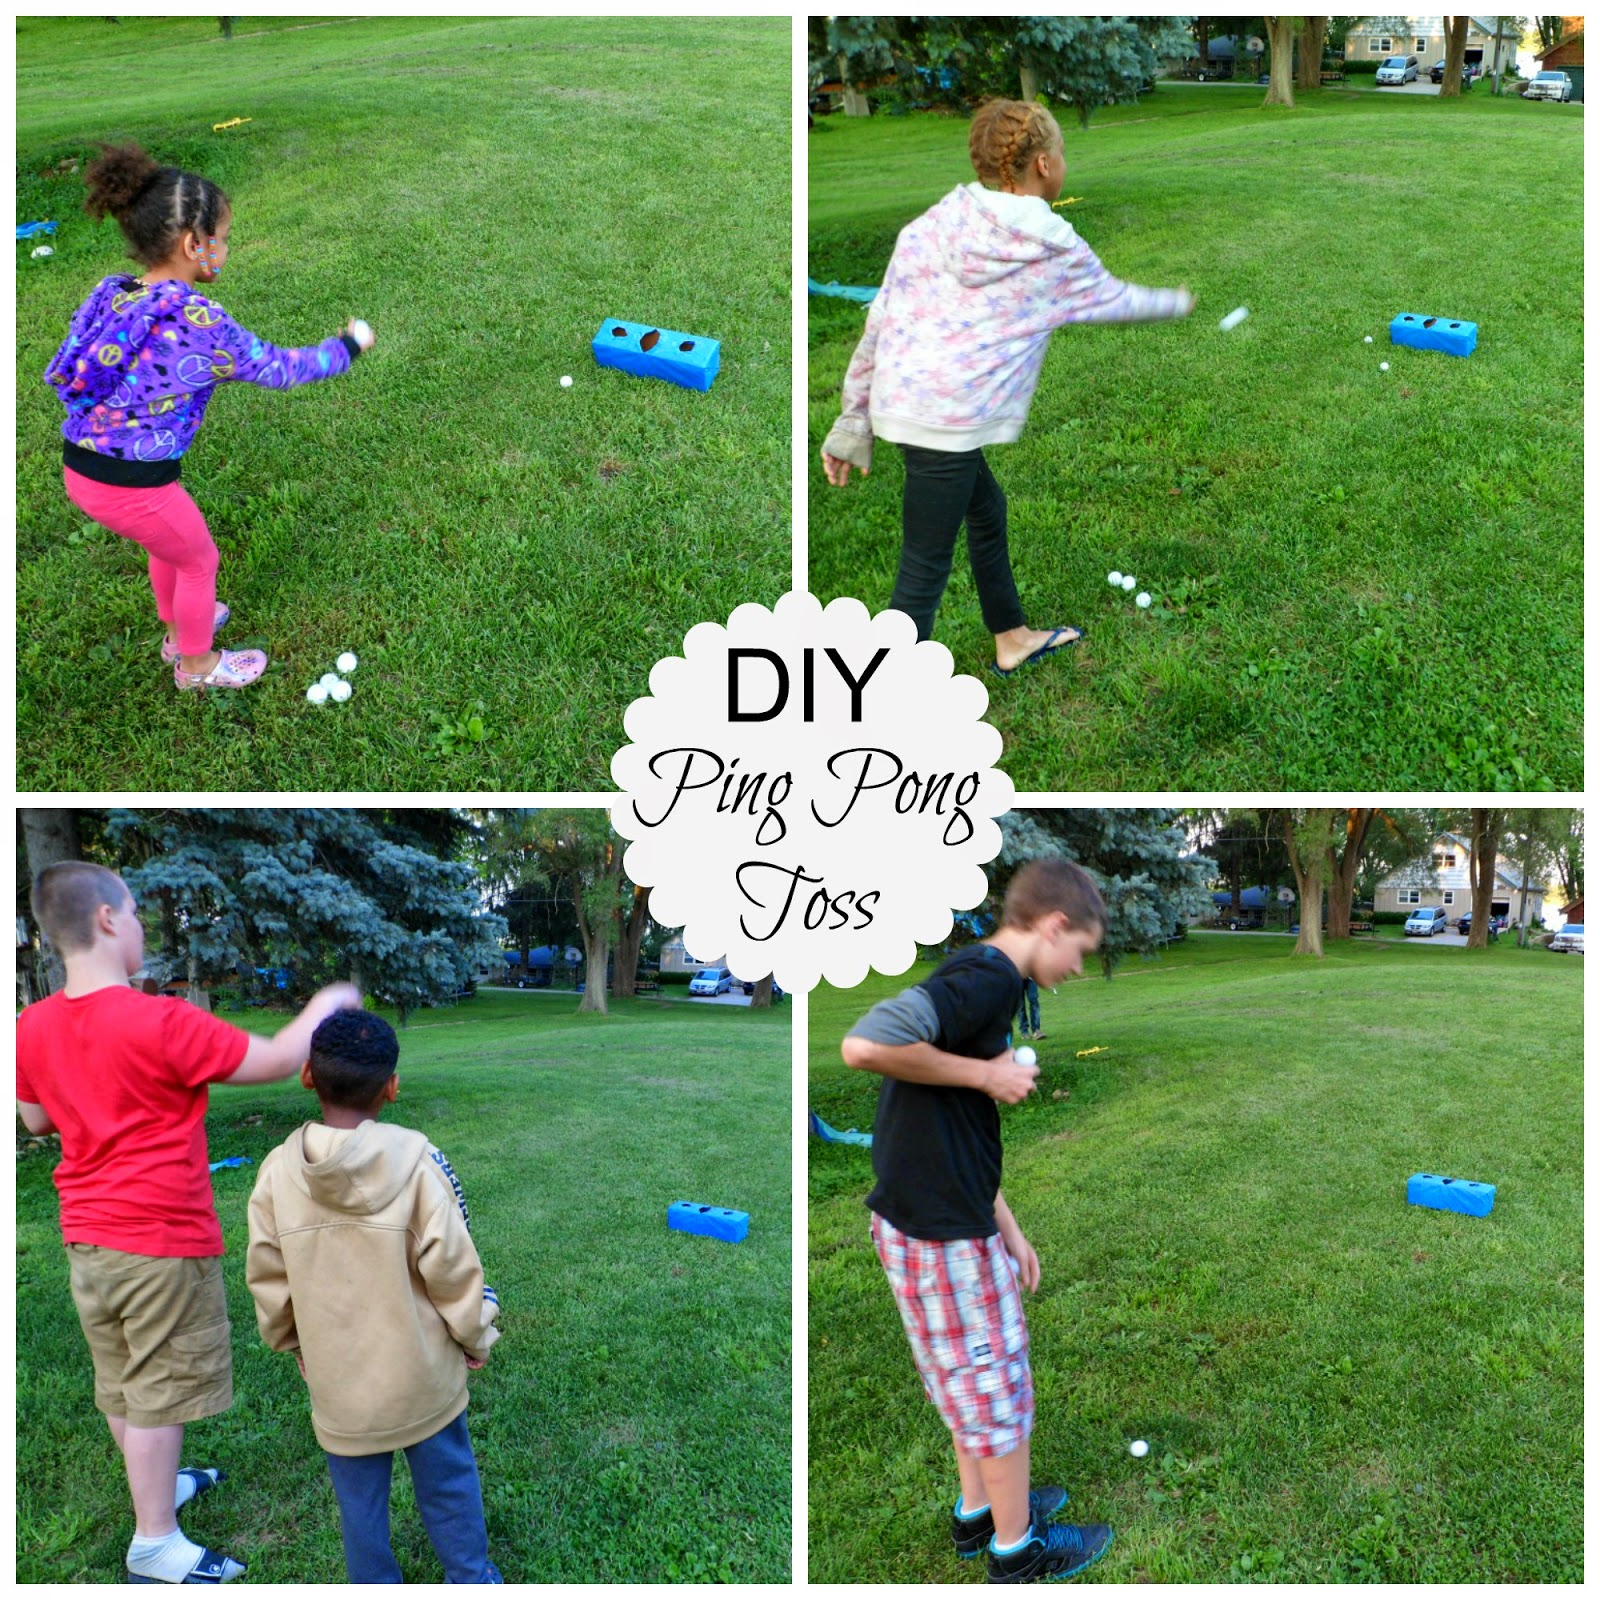 Make Your Backyard Bash A Hit With Diy Games And Snack Mix